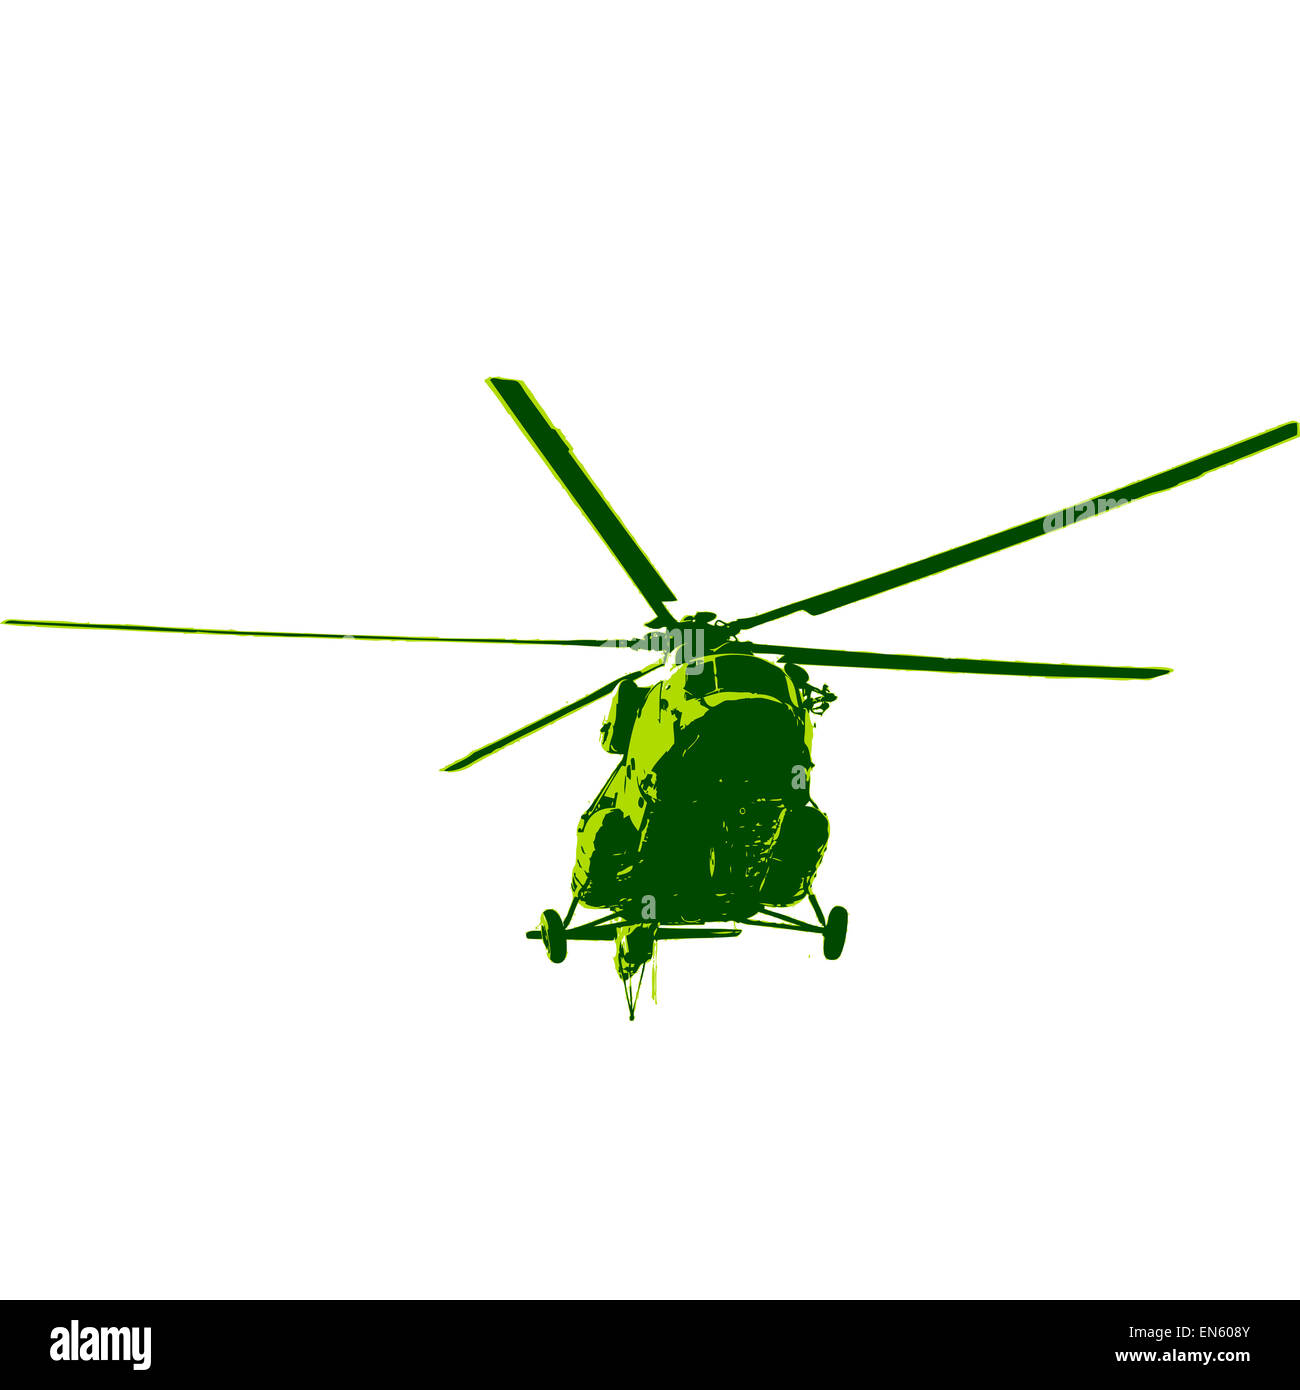 Russian army Mi-8 helicopter. Vector illustration. - Stock Image